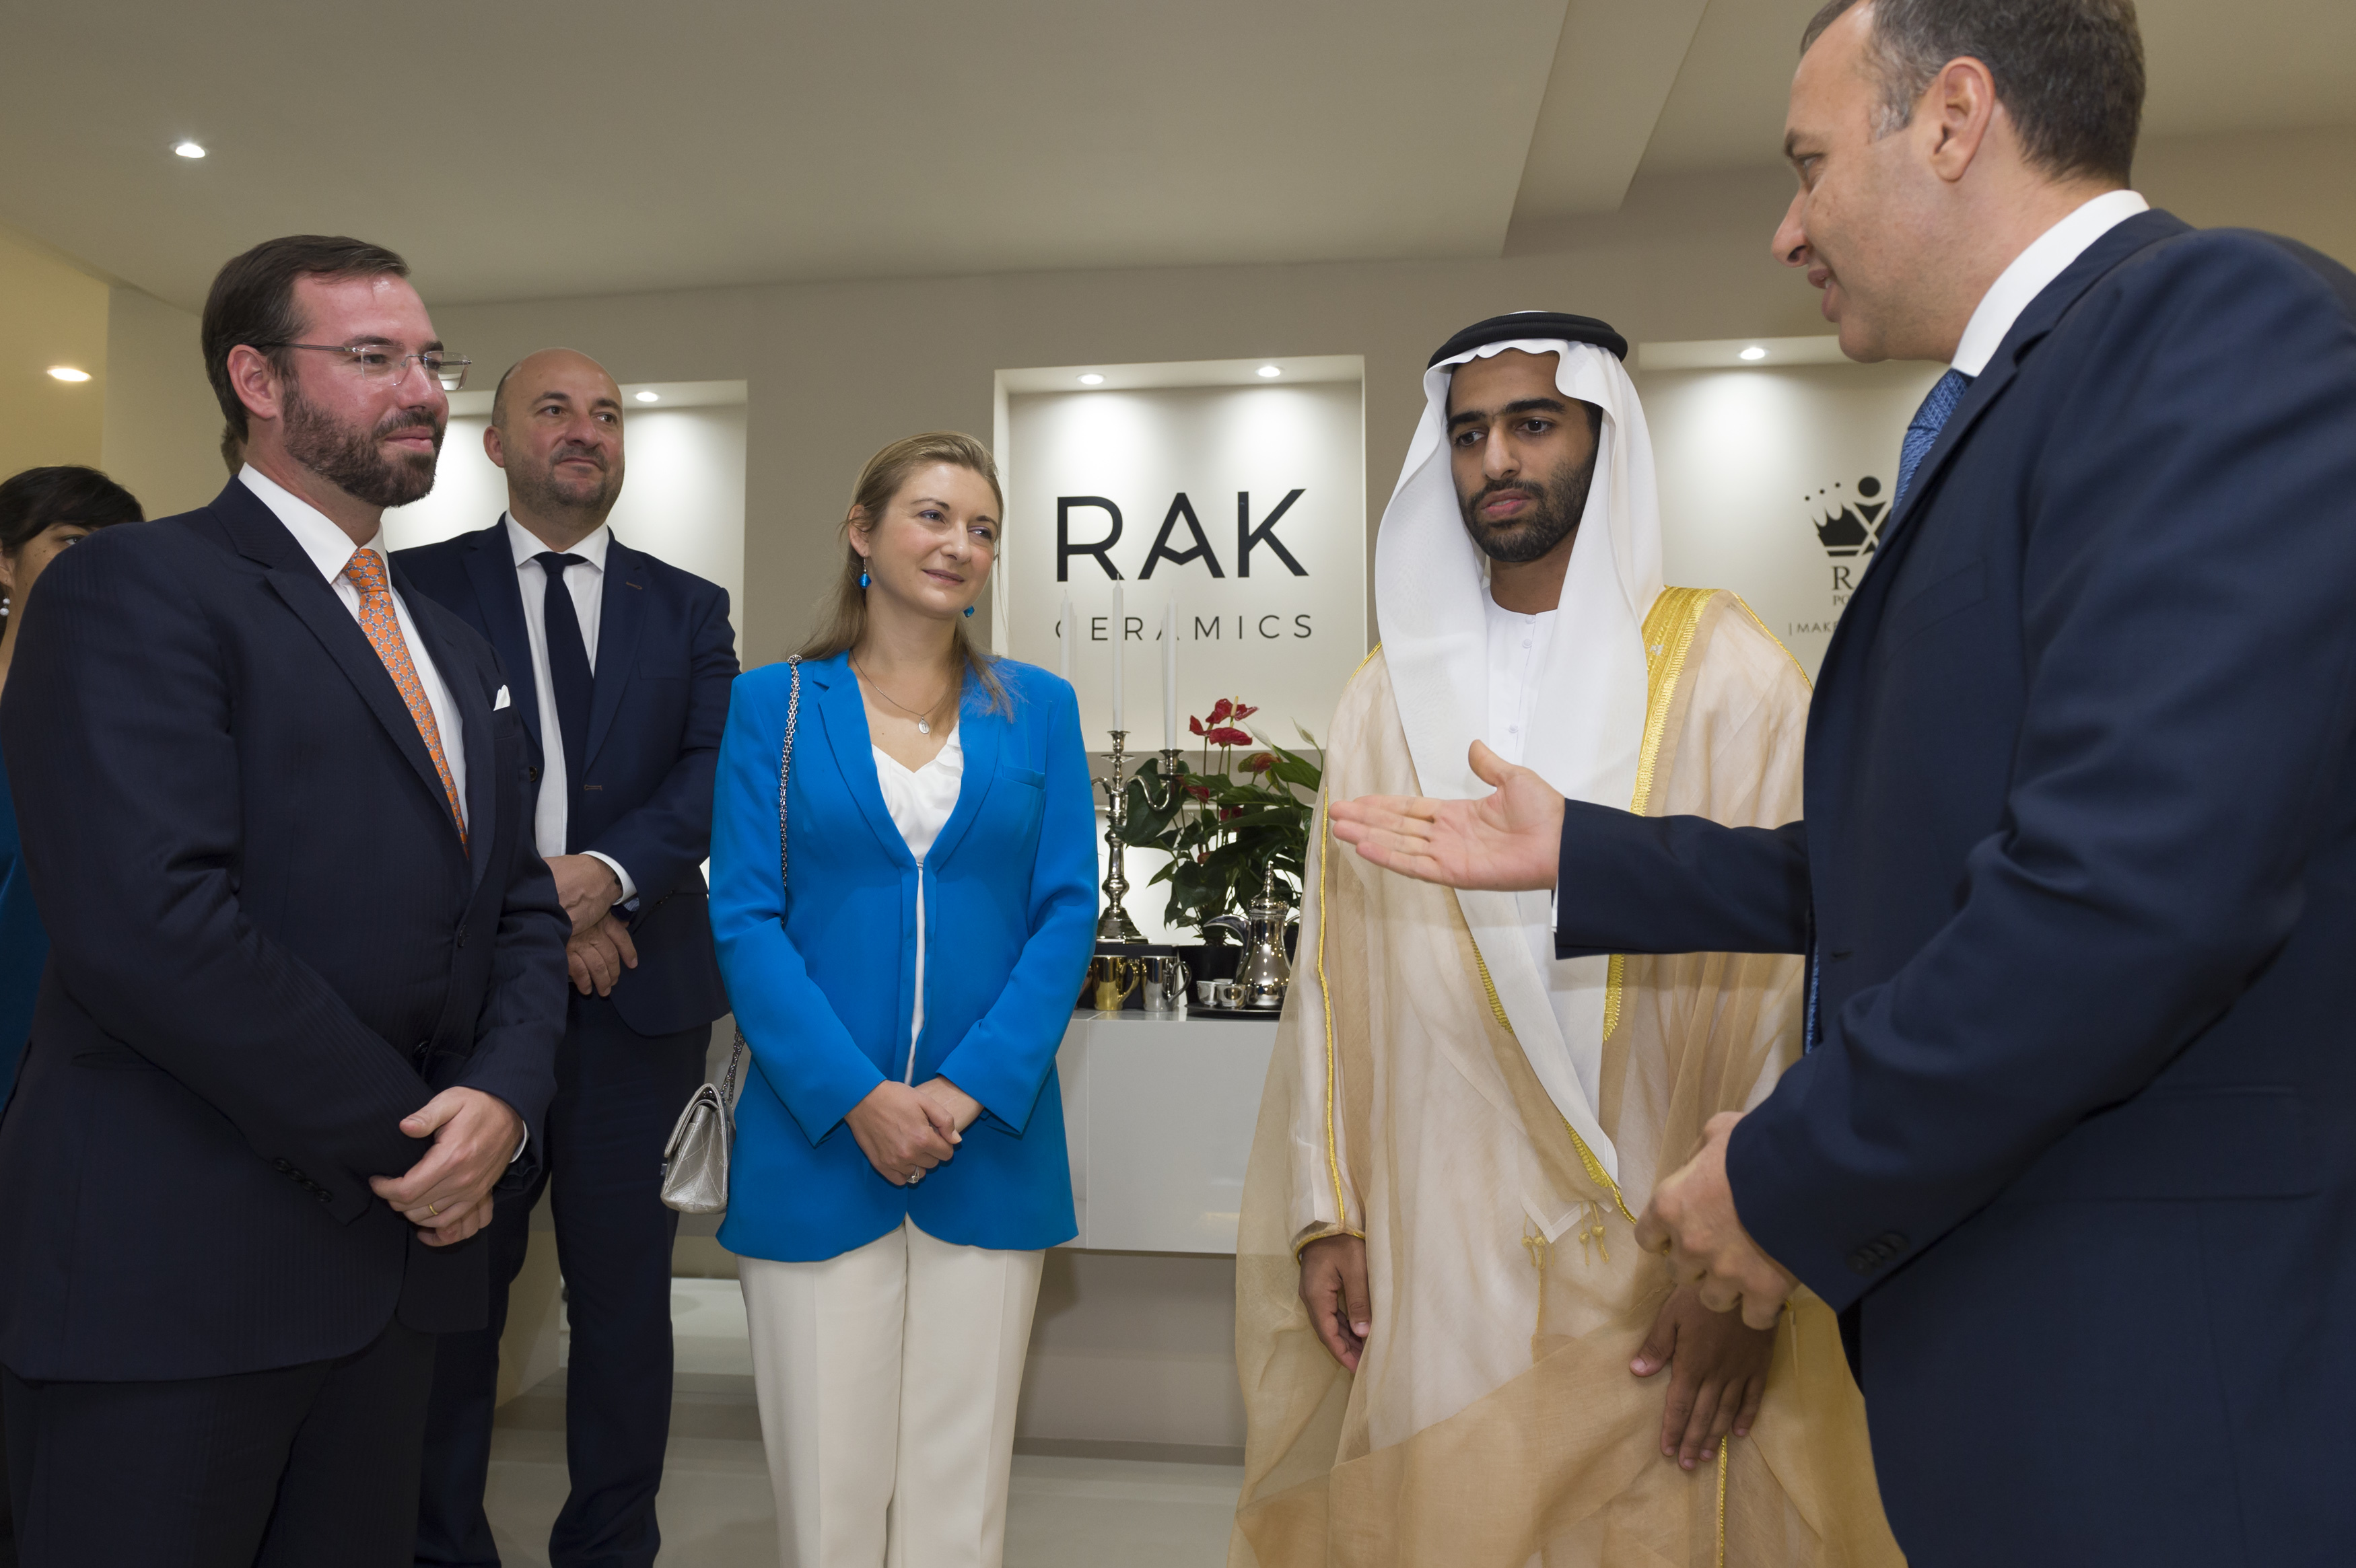 RAK Ceramics Welcomes HRH Prince Guillaume of Luxembourg